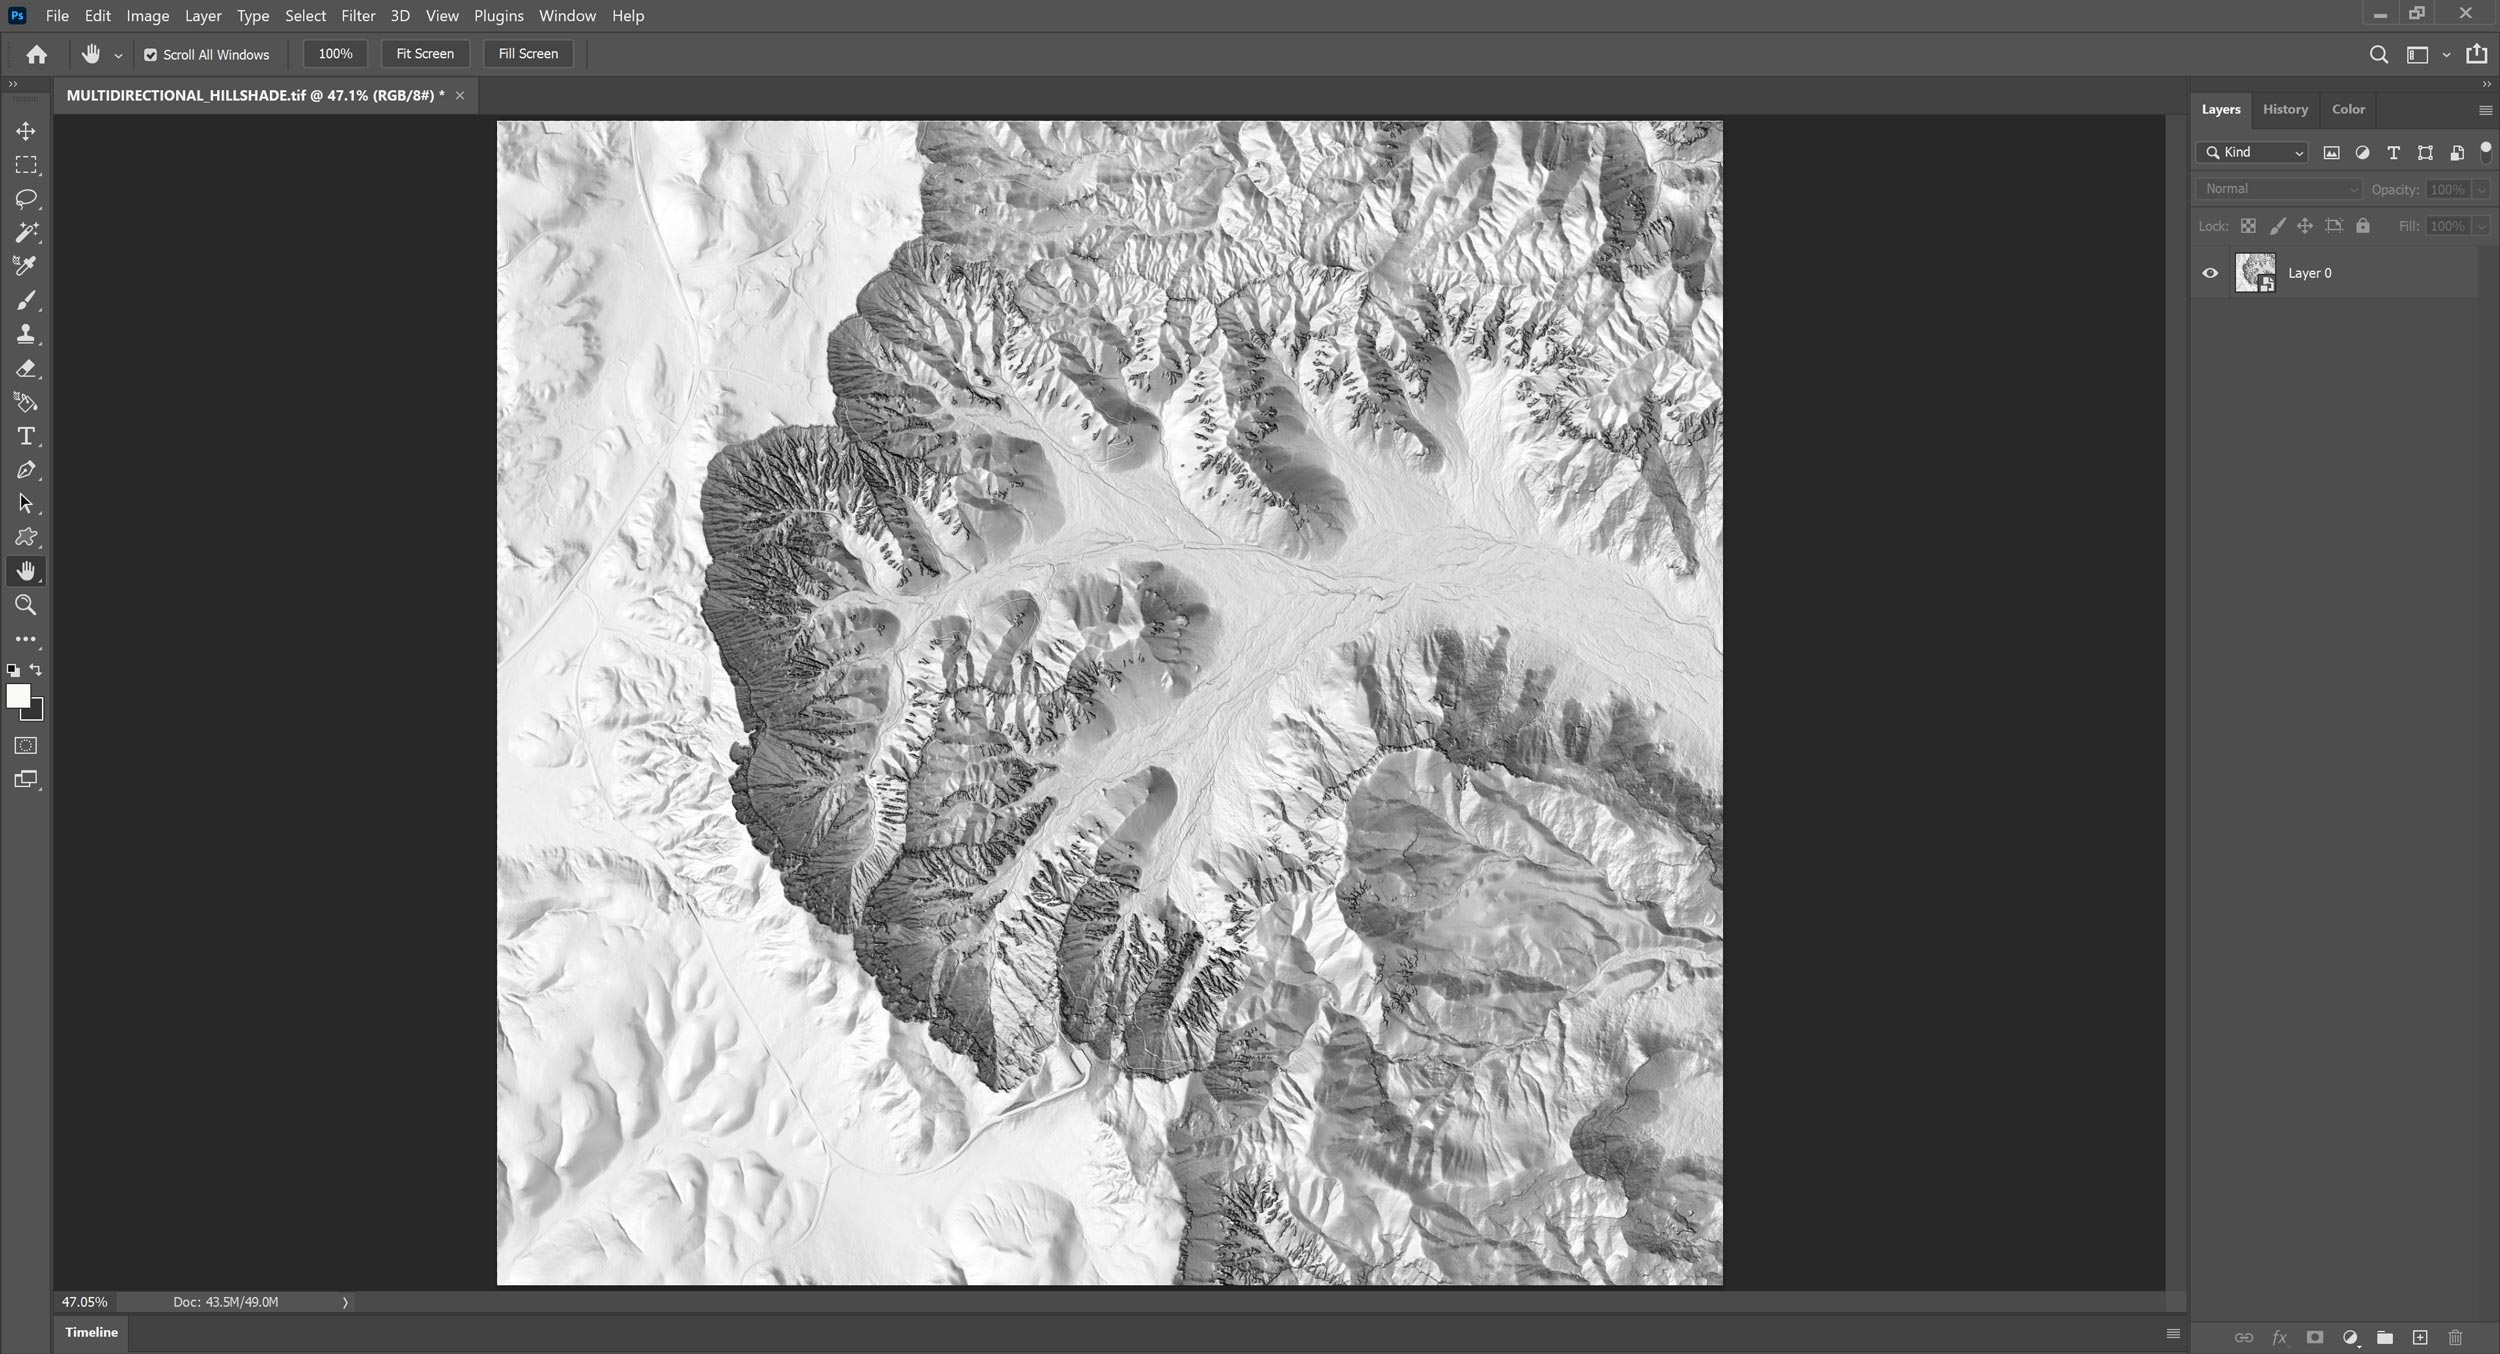 Picture 8: Load the multi-directional hillshade in Adobe Photoshop.